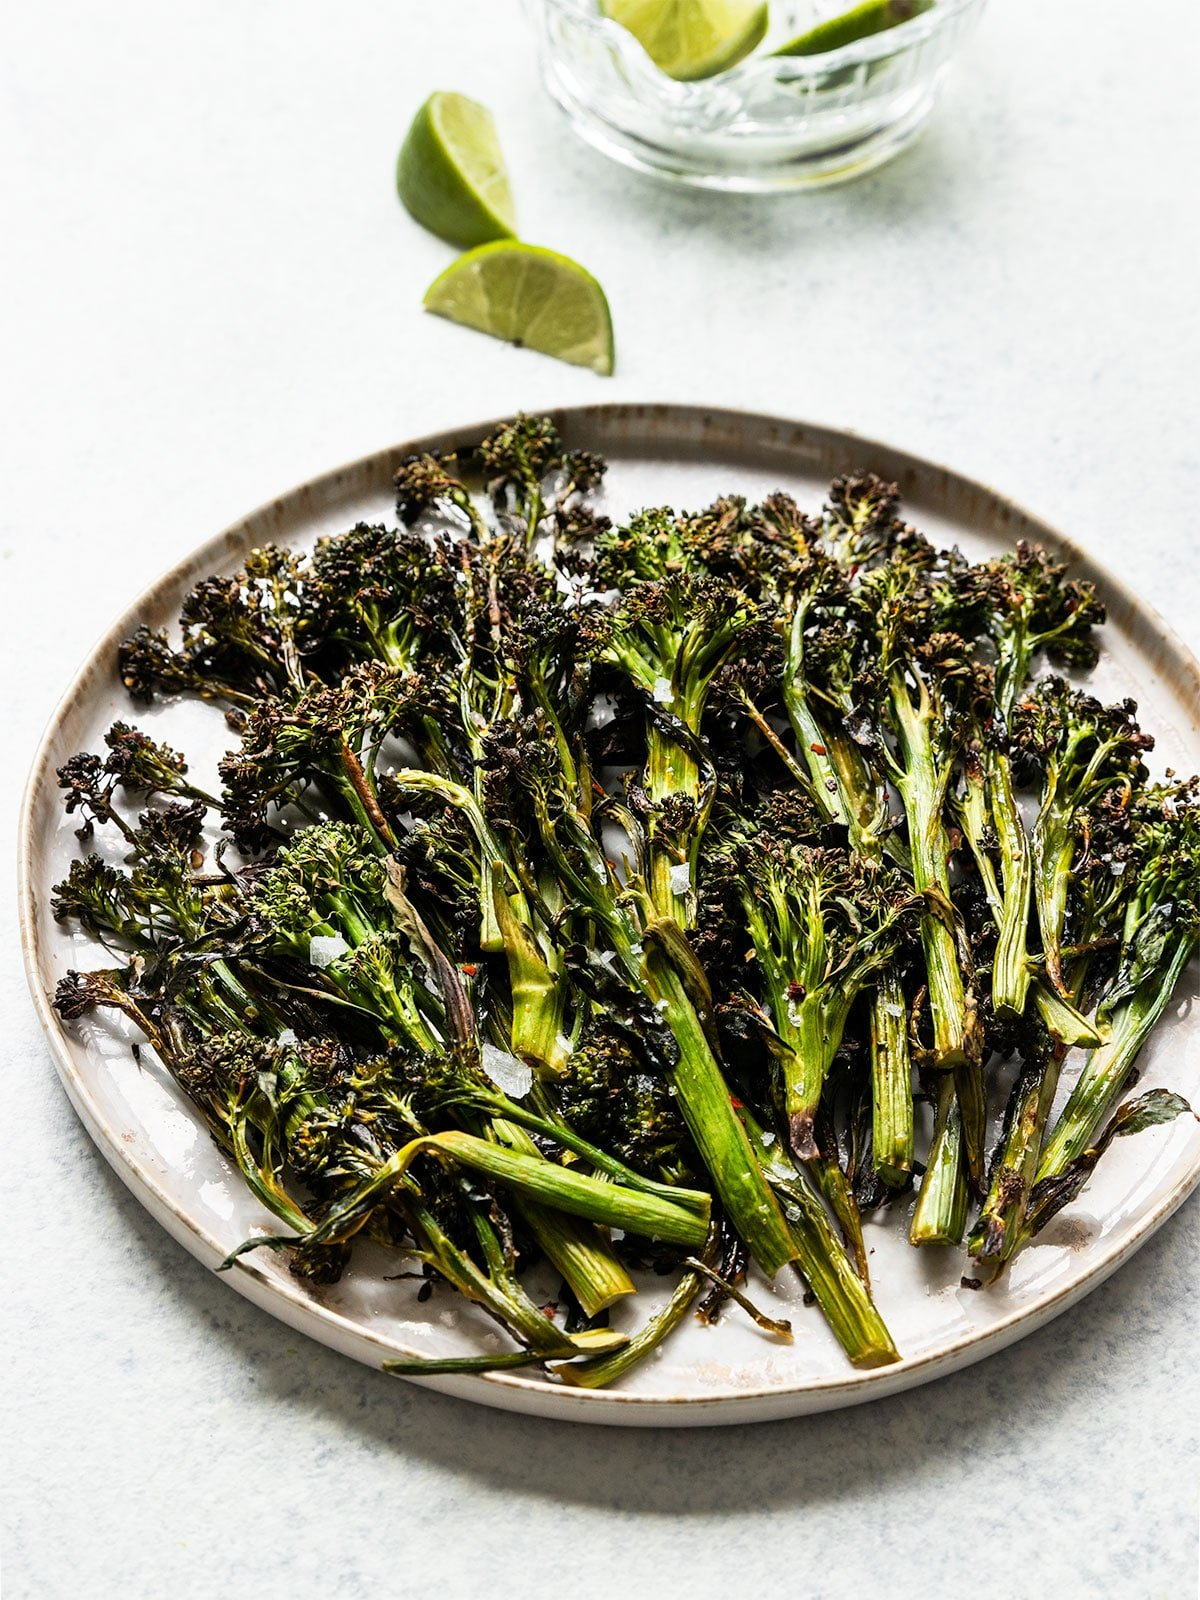 a plate full of broccolini with lime wedges